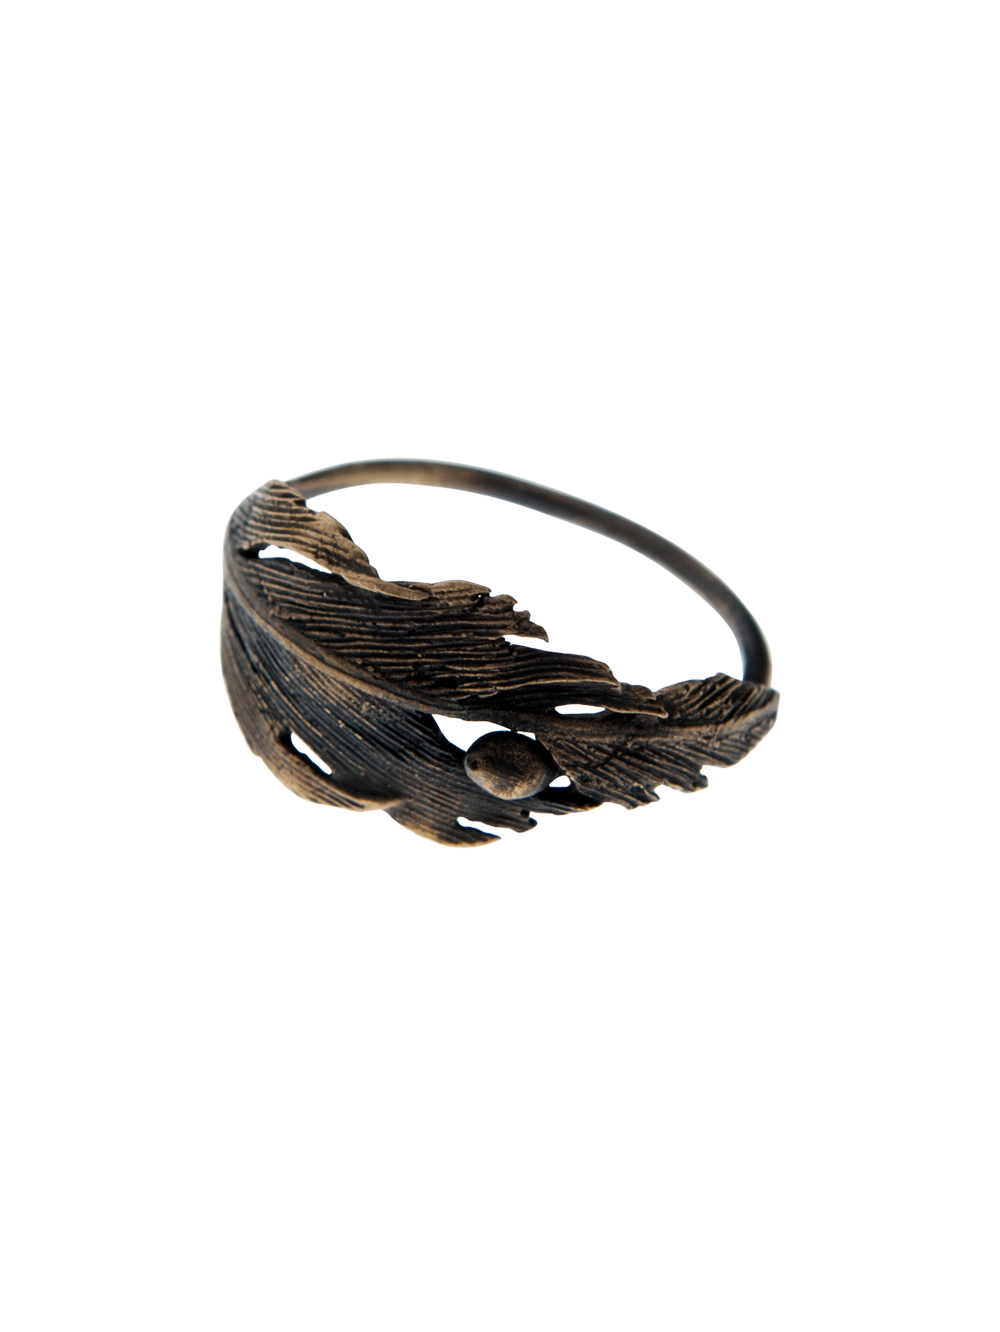 Statement falcon feather bronze ring by Icelandic jeweller Aurum. Size: 30mm x 10mm.